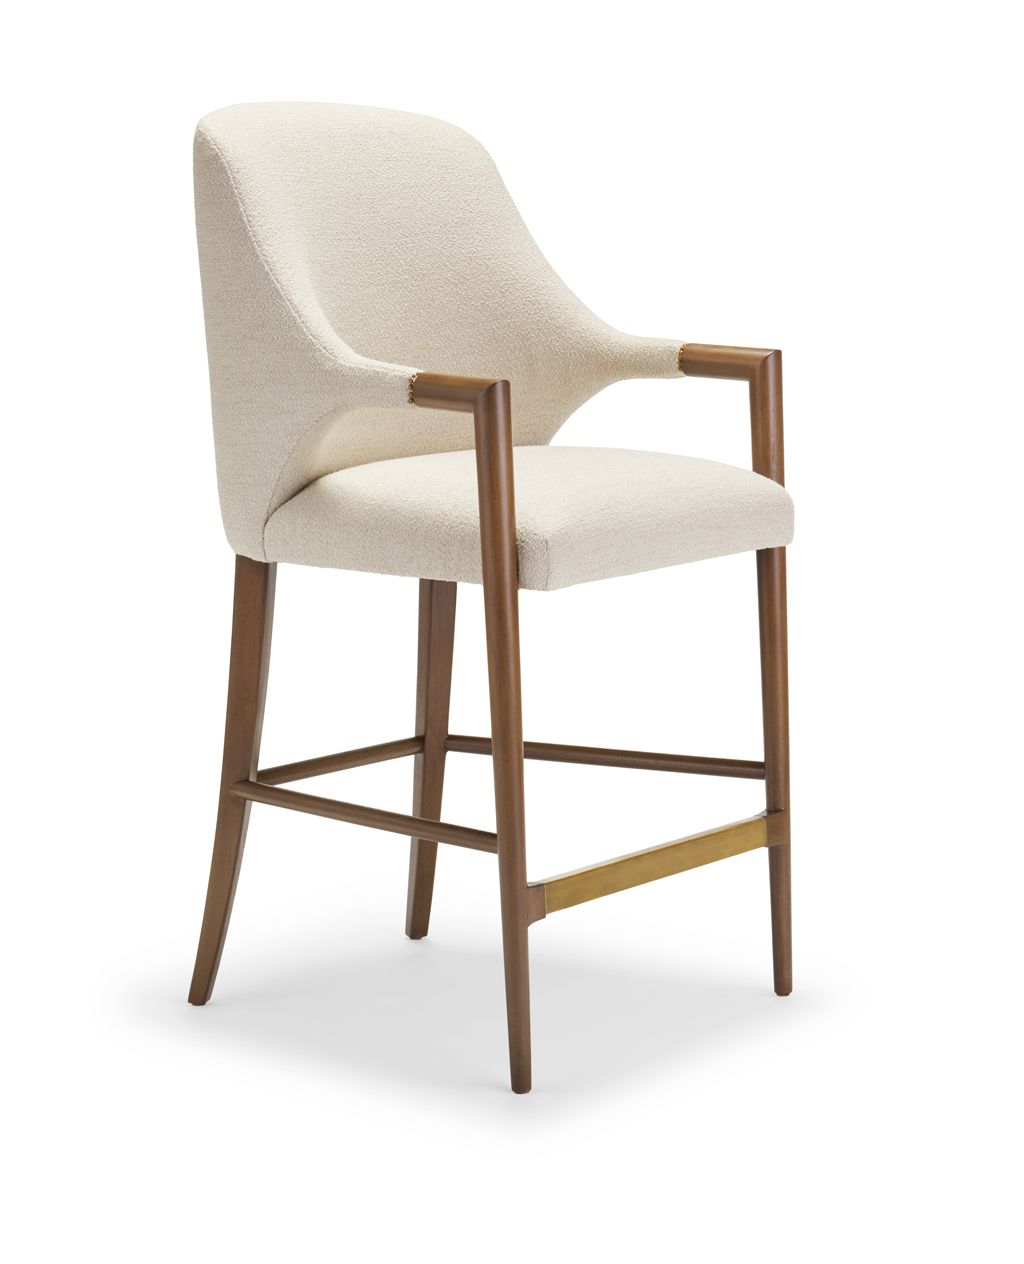 Kitchen Chairs With Arms: Harris Arm Barstool